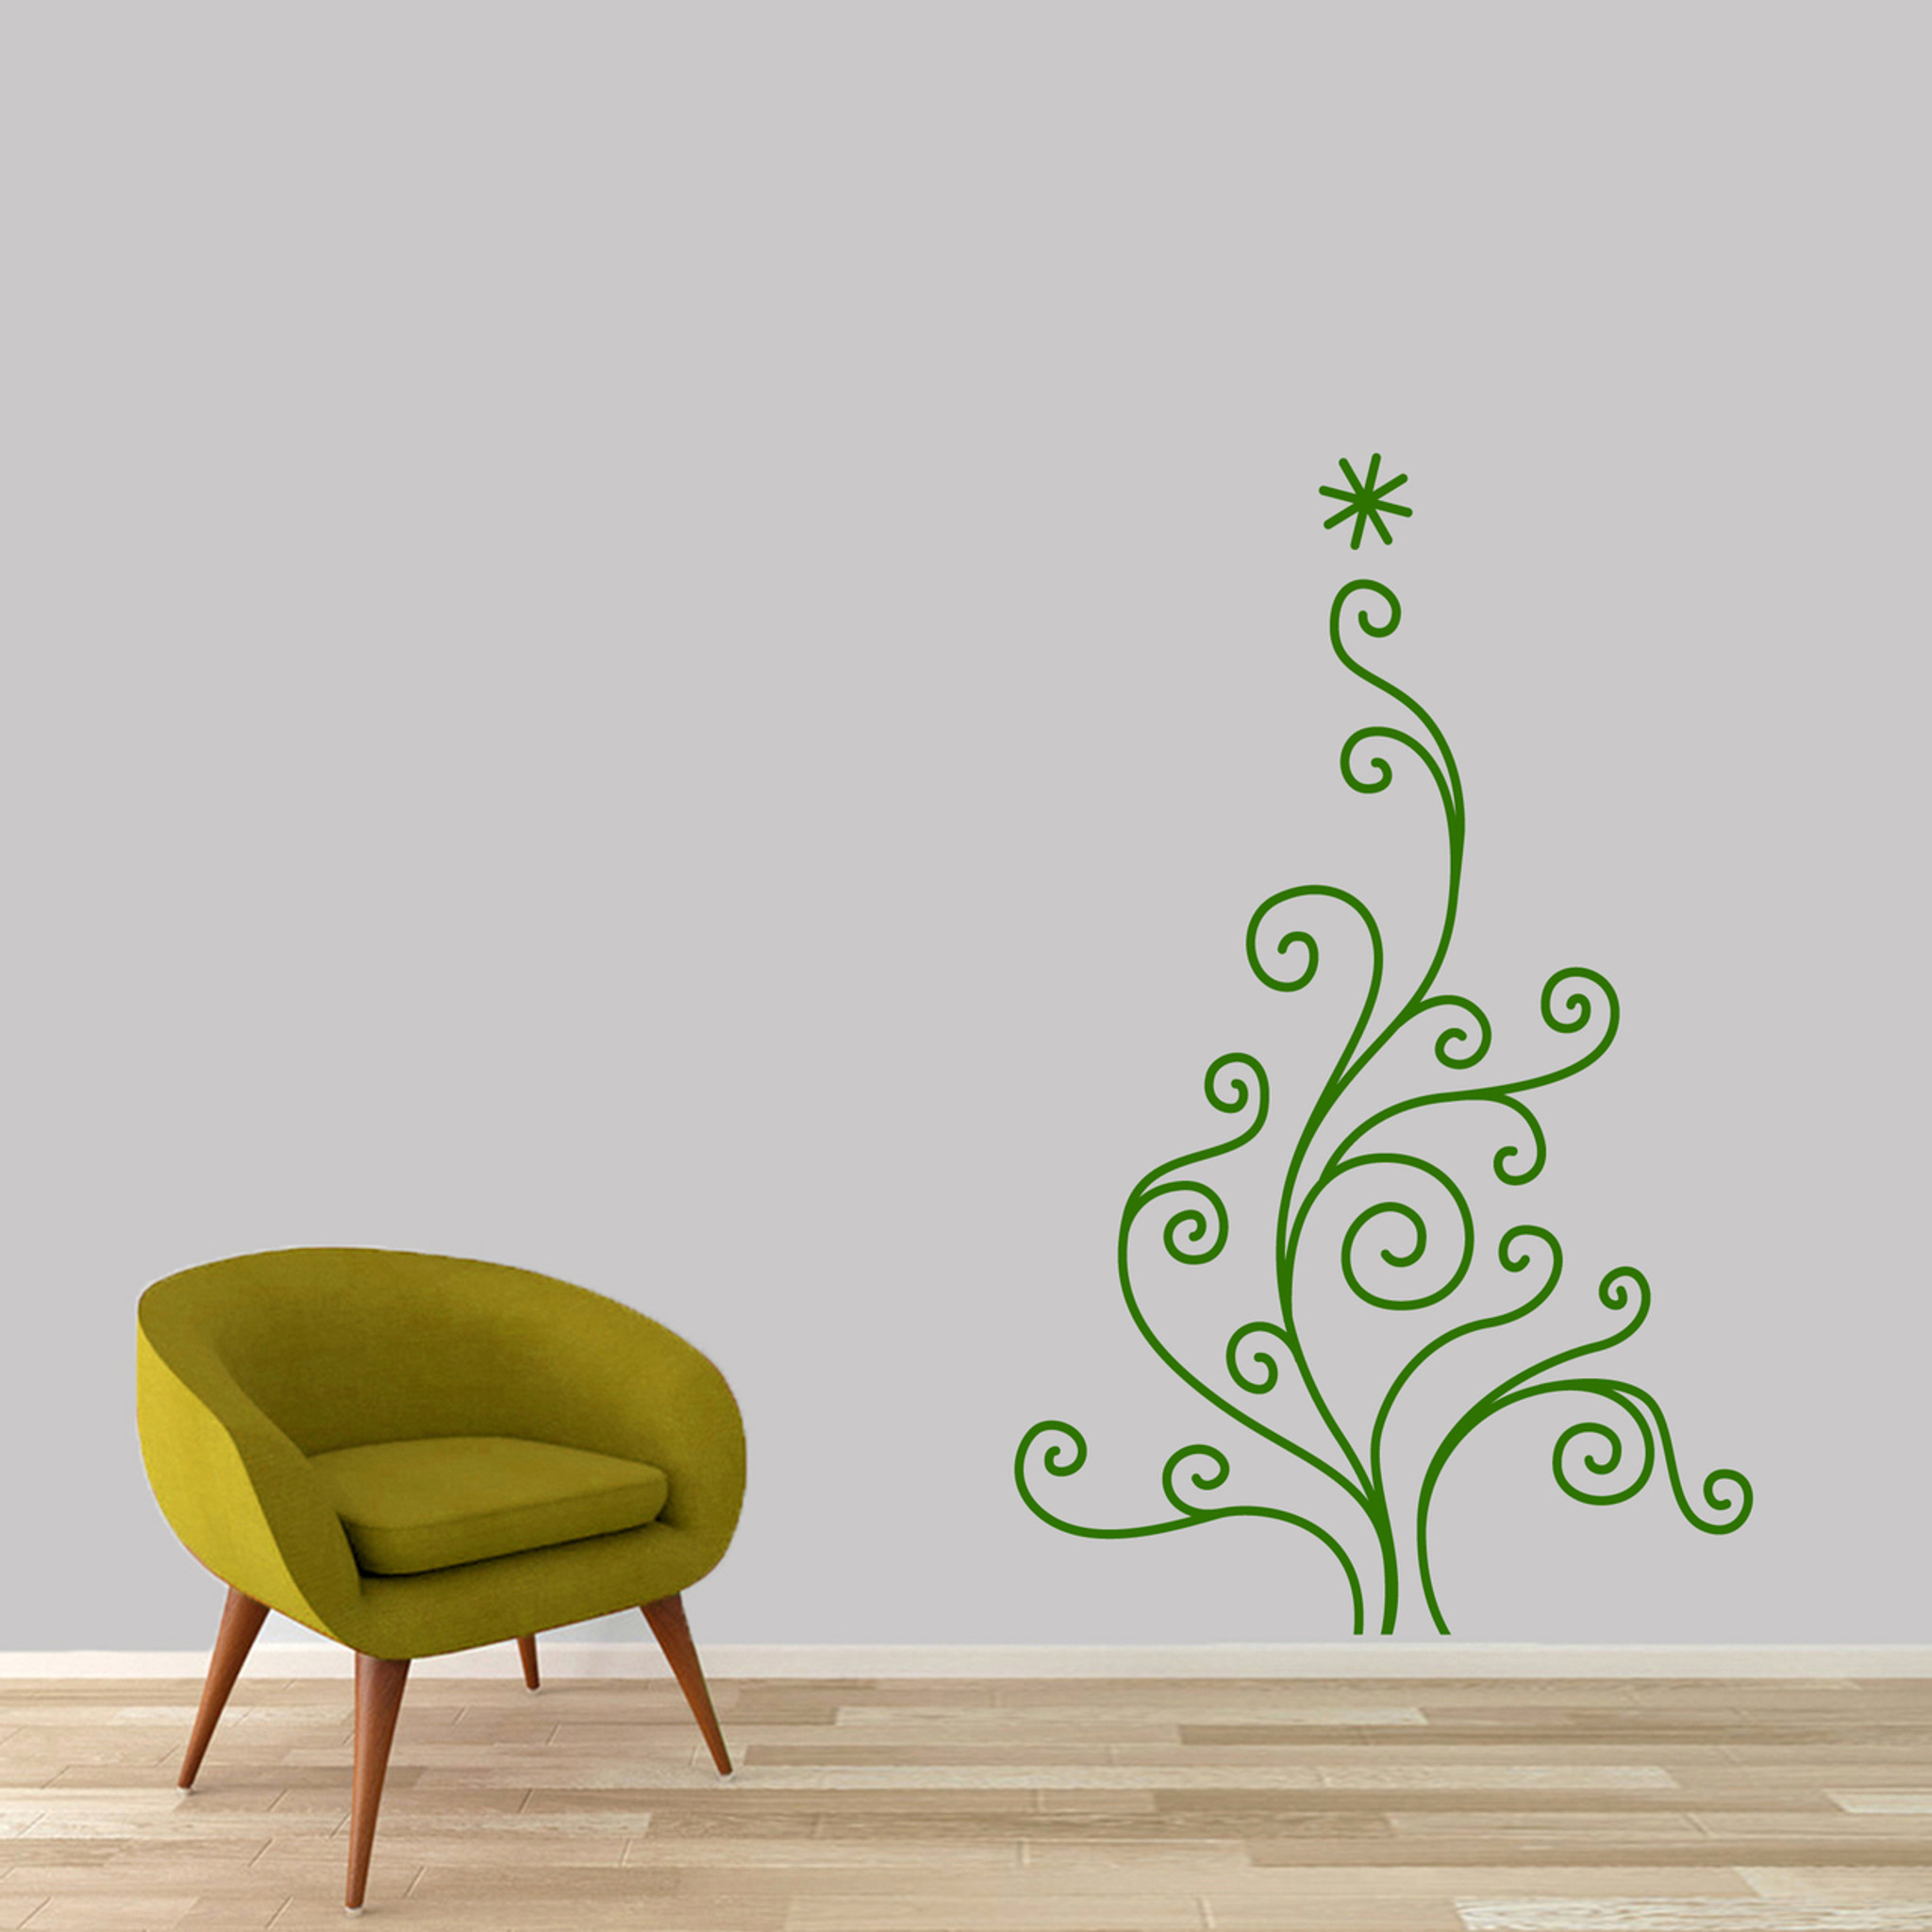 Christmas Tree Wall Decal 30  wide x 48  tall S&le Image  sc 1 st  Sweetums Signatures & Christmas Tree Wall Decals |Wall Art | Wall Murals